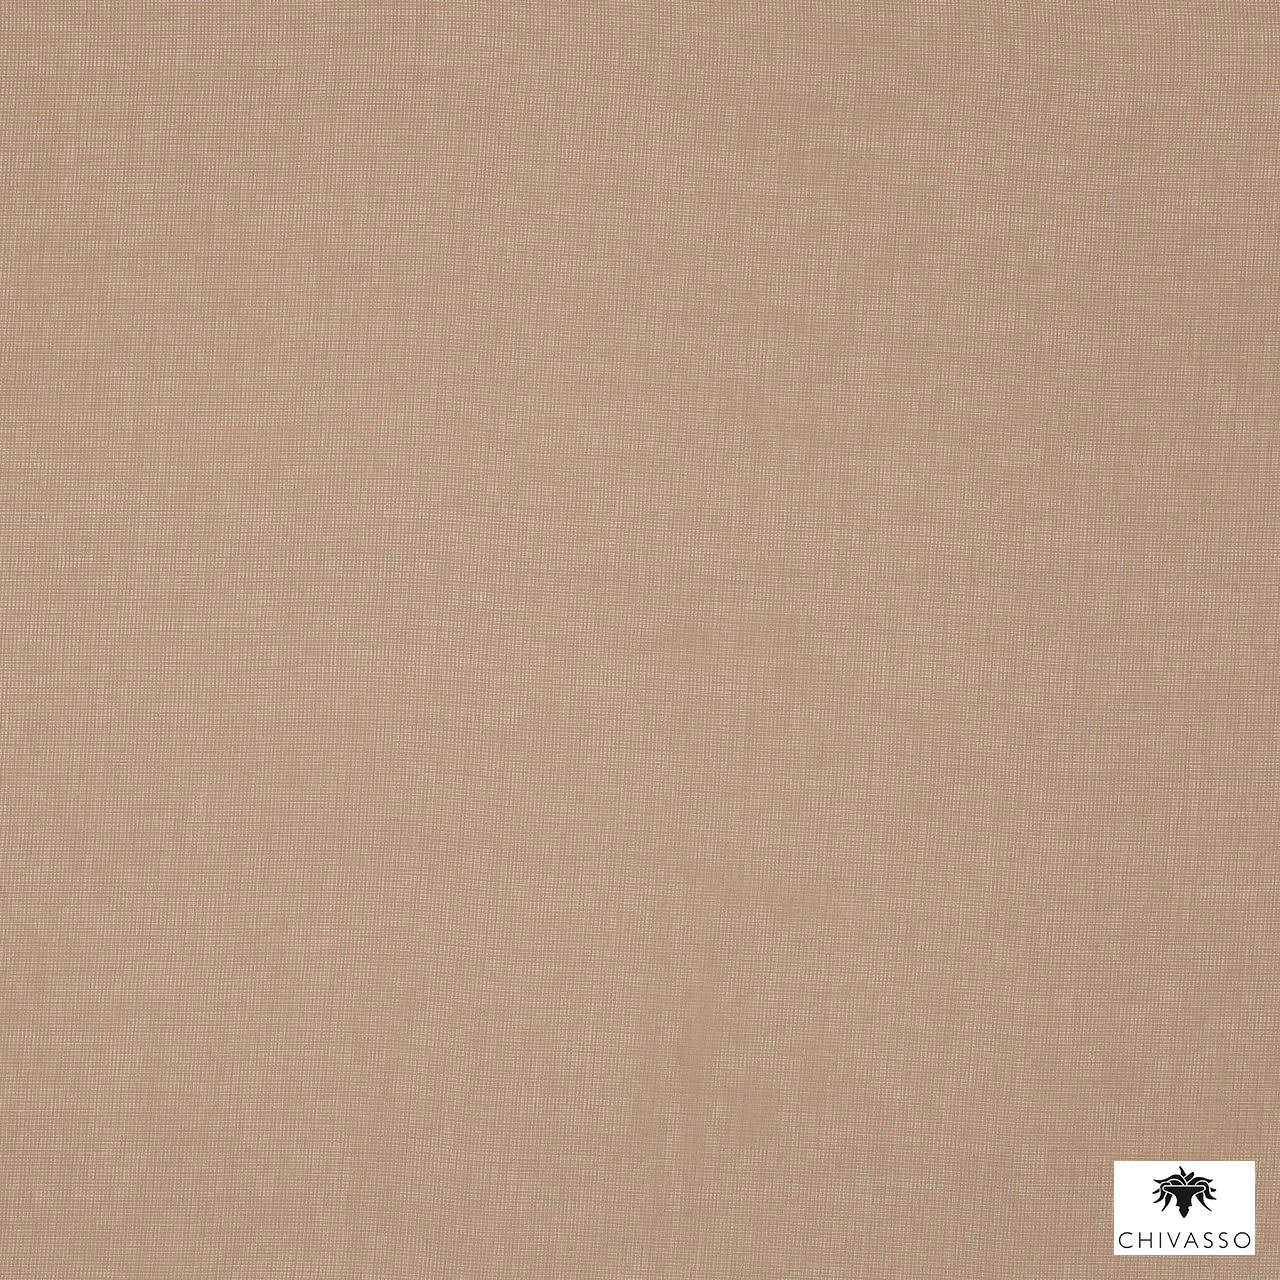 Chivasso - Lush - Ch2818 - 022  | Curtain Fabric - Brown, Plain, Synthetic, Domestic Use, Wide Width